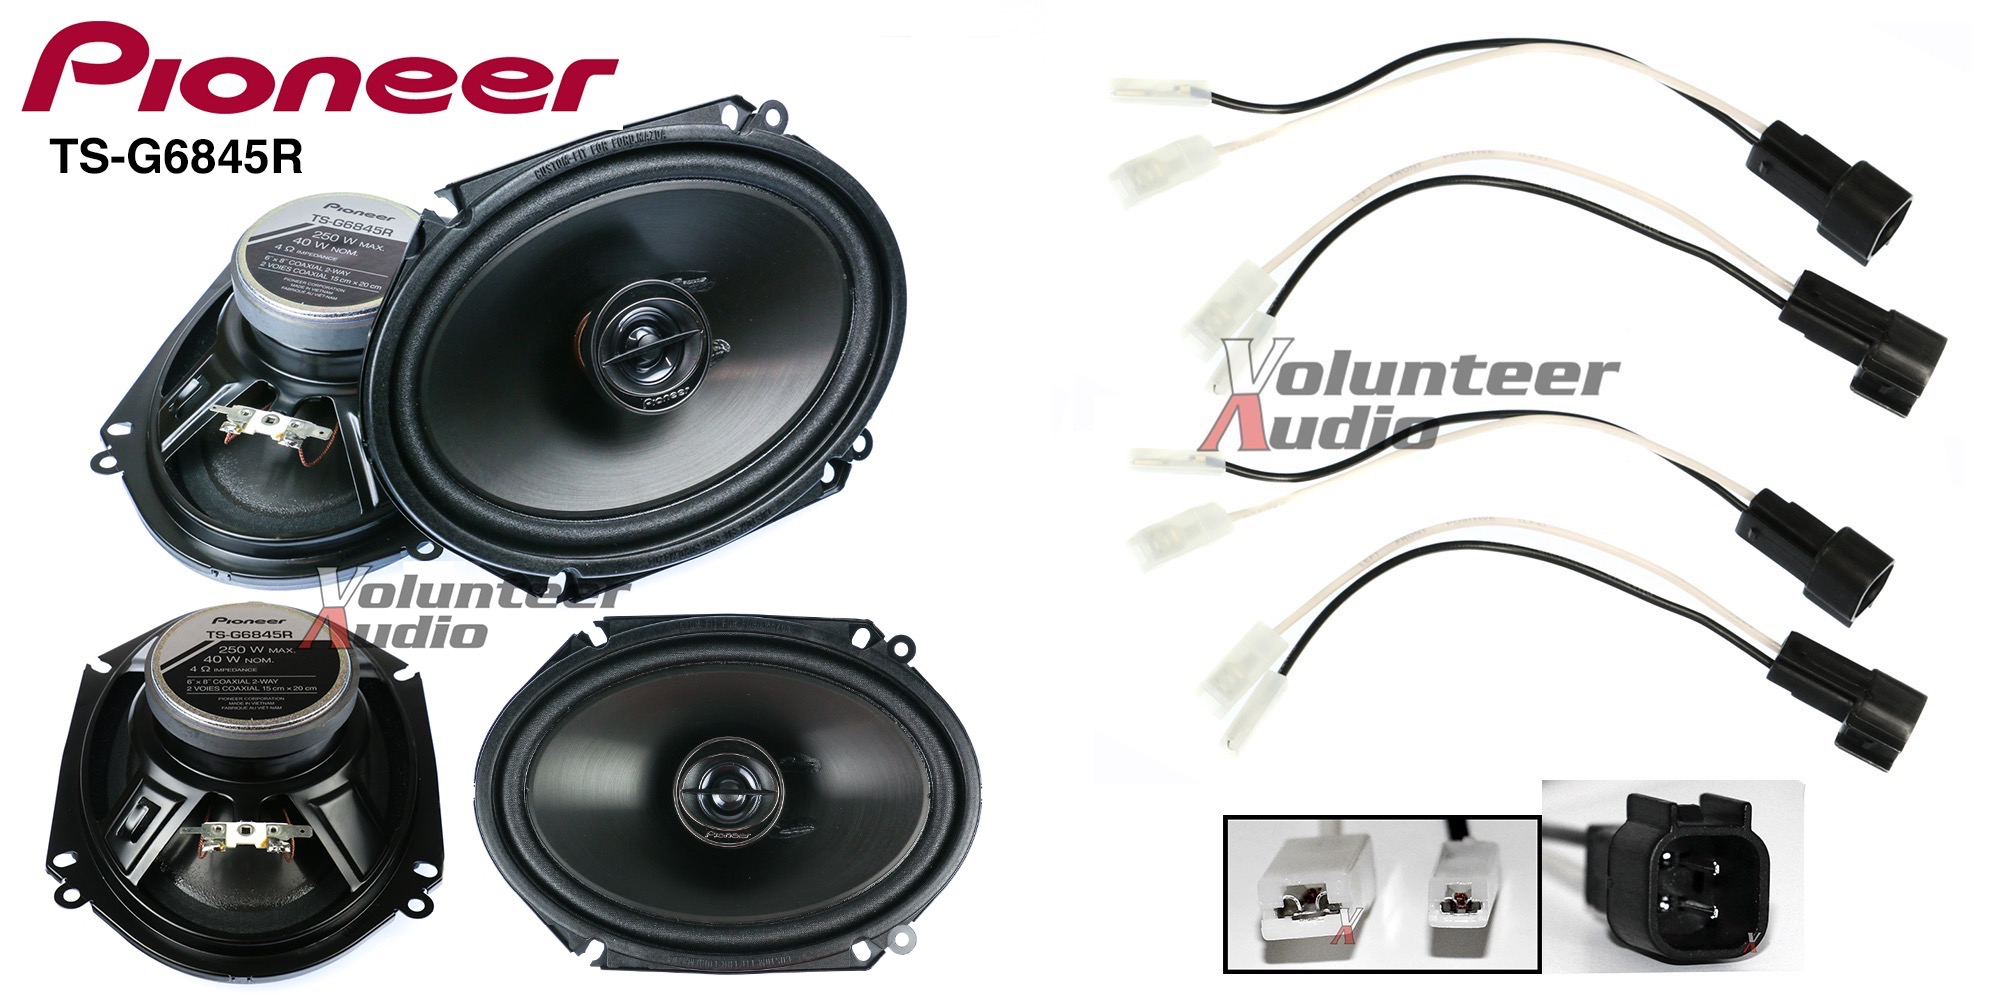 pioneer ts g6845r 6x8 speakers with wiring harness fits ford 2 Pioneer To Ford Wiring Harness image is loading pioneer ts g6845r 6x8 speakers with wiring harness pioneer to ford wiring harness adapter